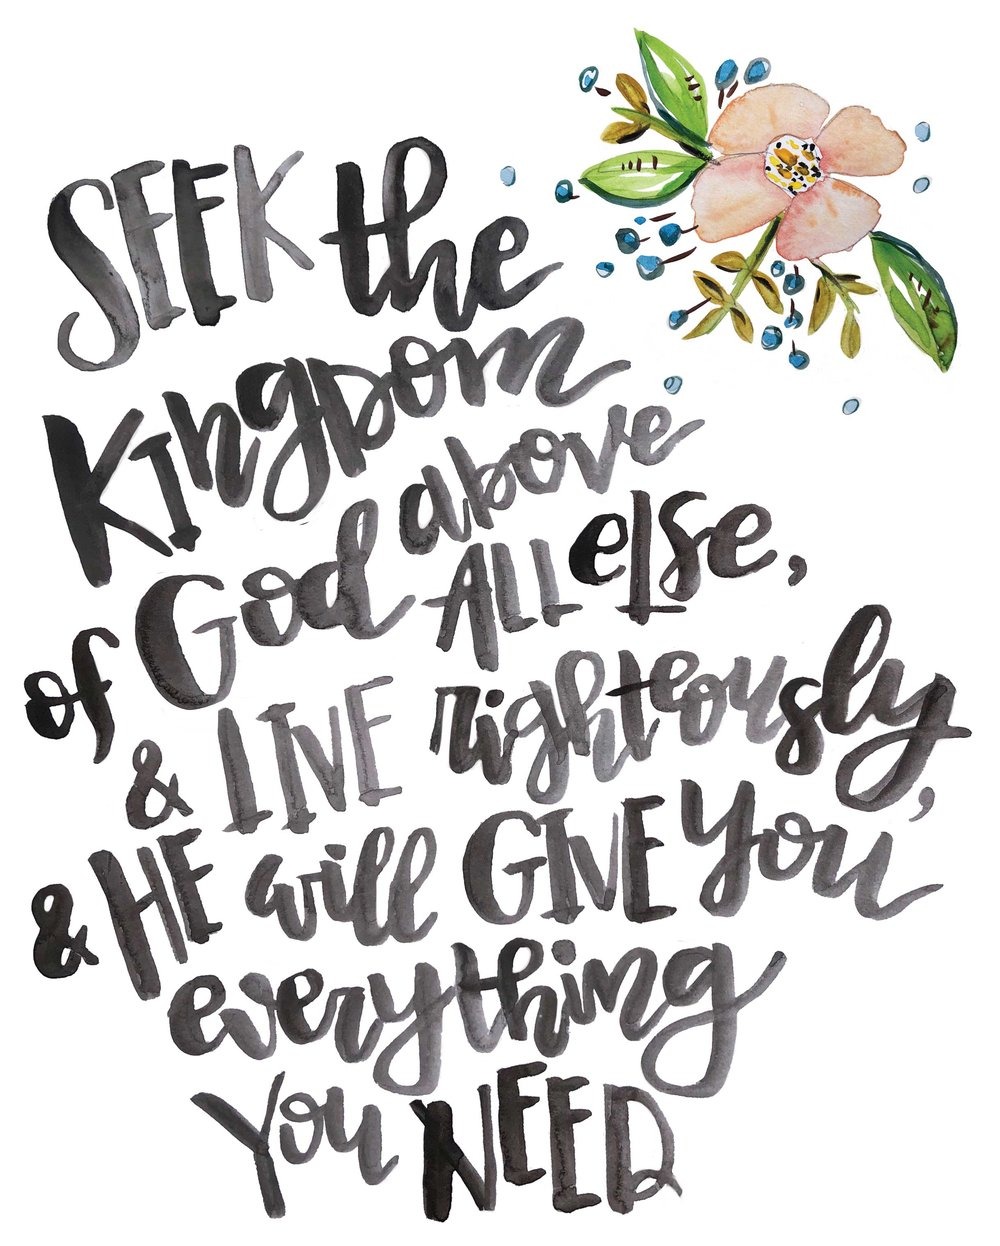 Melissa Lewis Art Hand Lettered Scripture Free 8x10 Print Download.